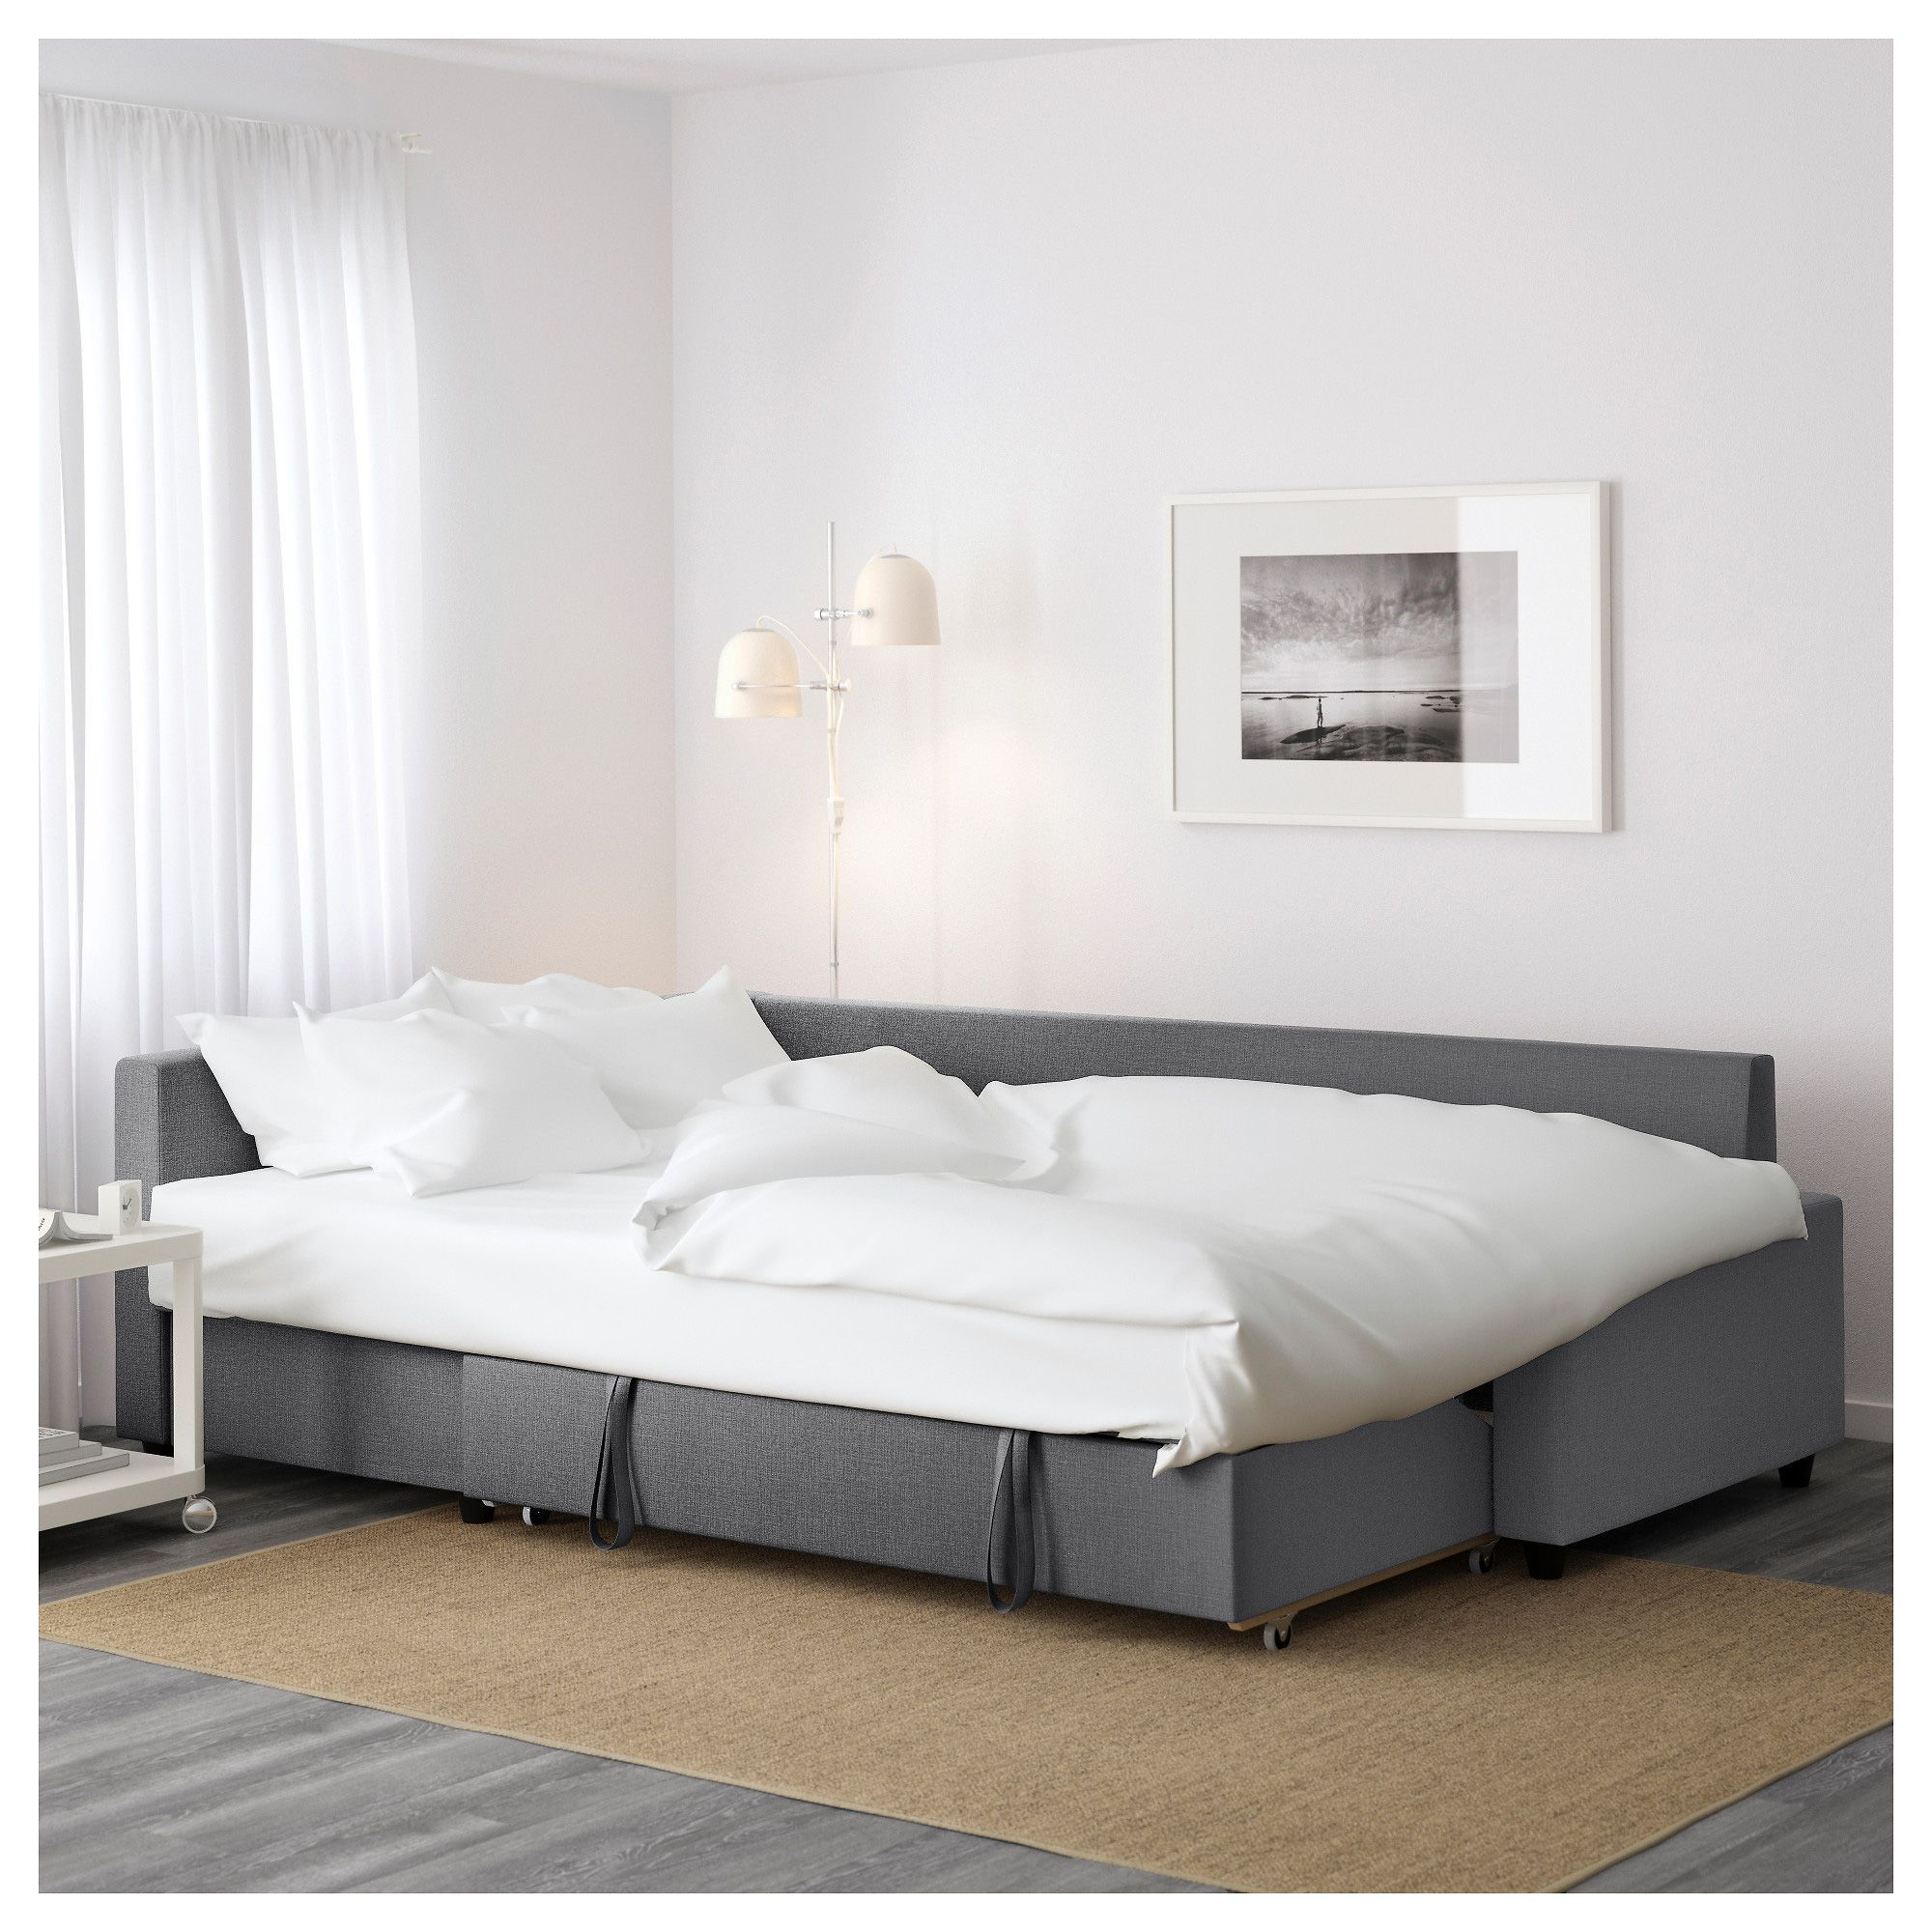 The best ikea products for small spaces apartment therapy - 15 Ikea Products That Do Extra For Small Spaces